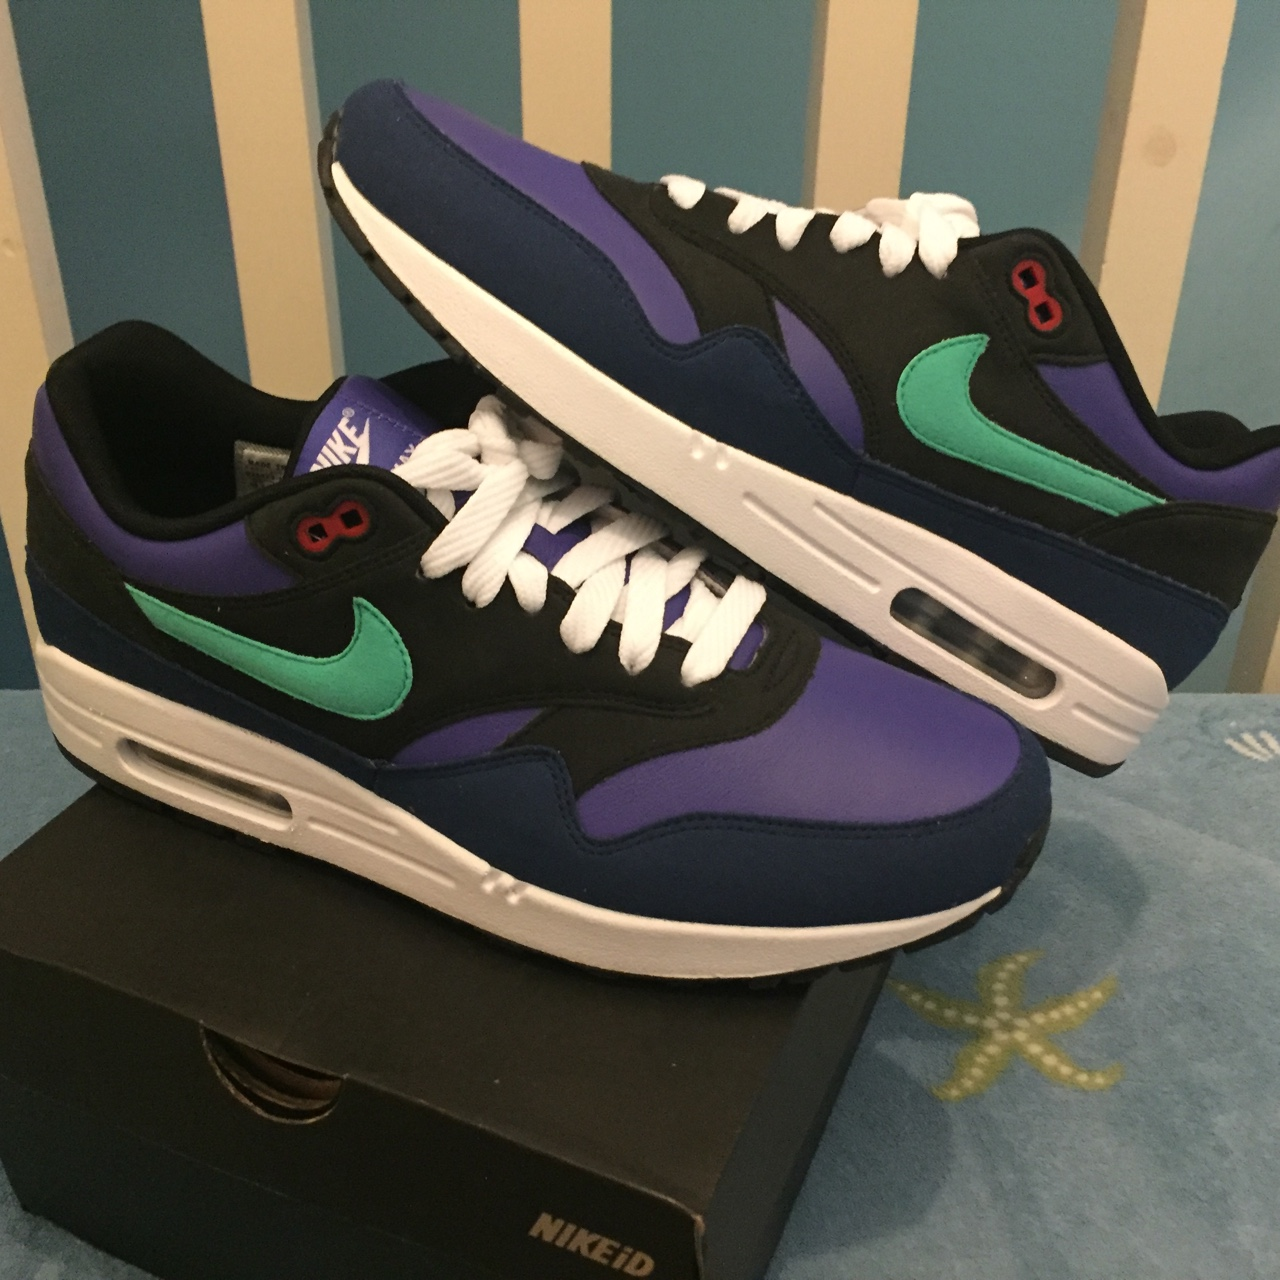 nike air max 1 patta denim cords